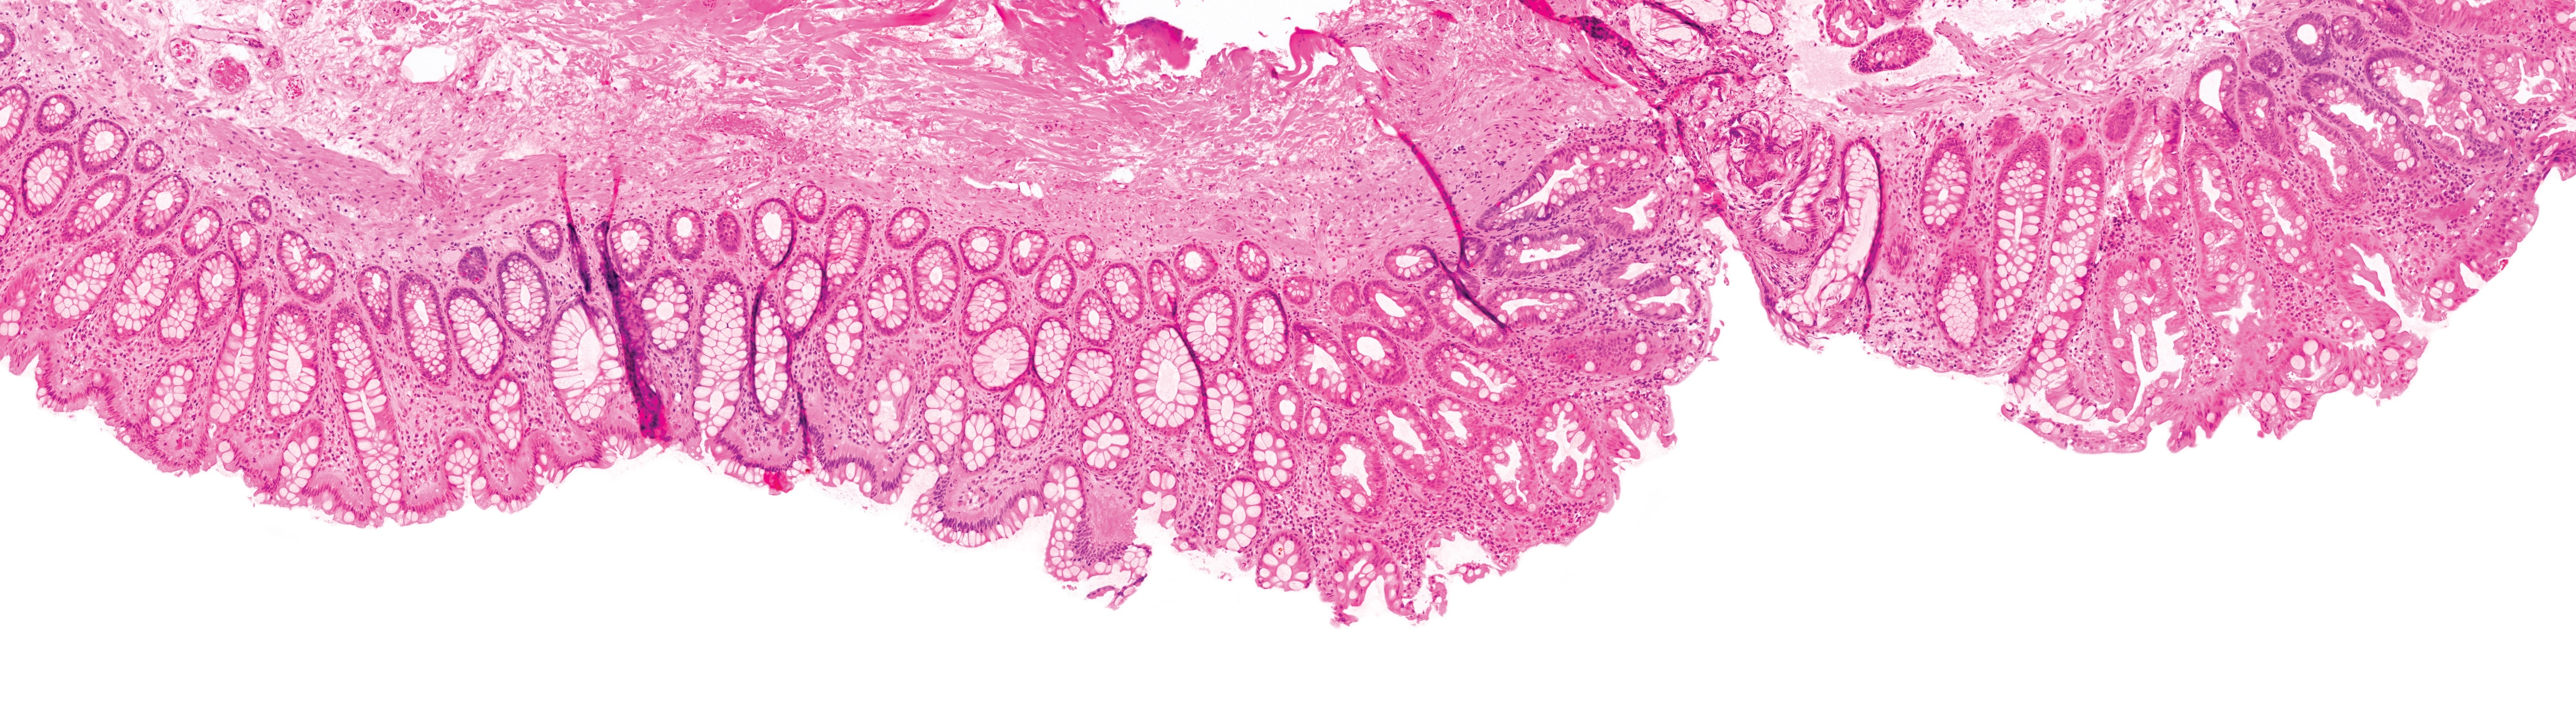 Covid-19 Impact on Digital Pathology in the Healthcare Industry